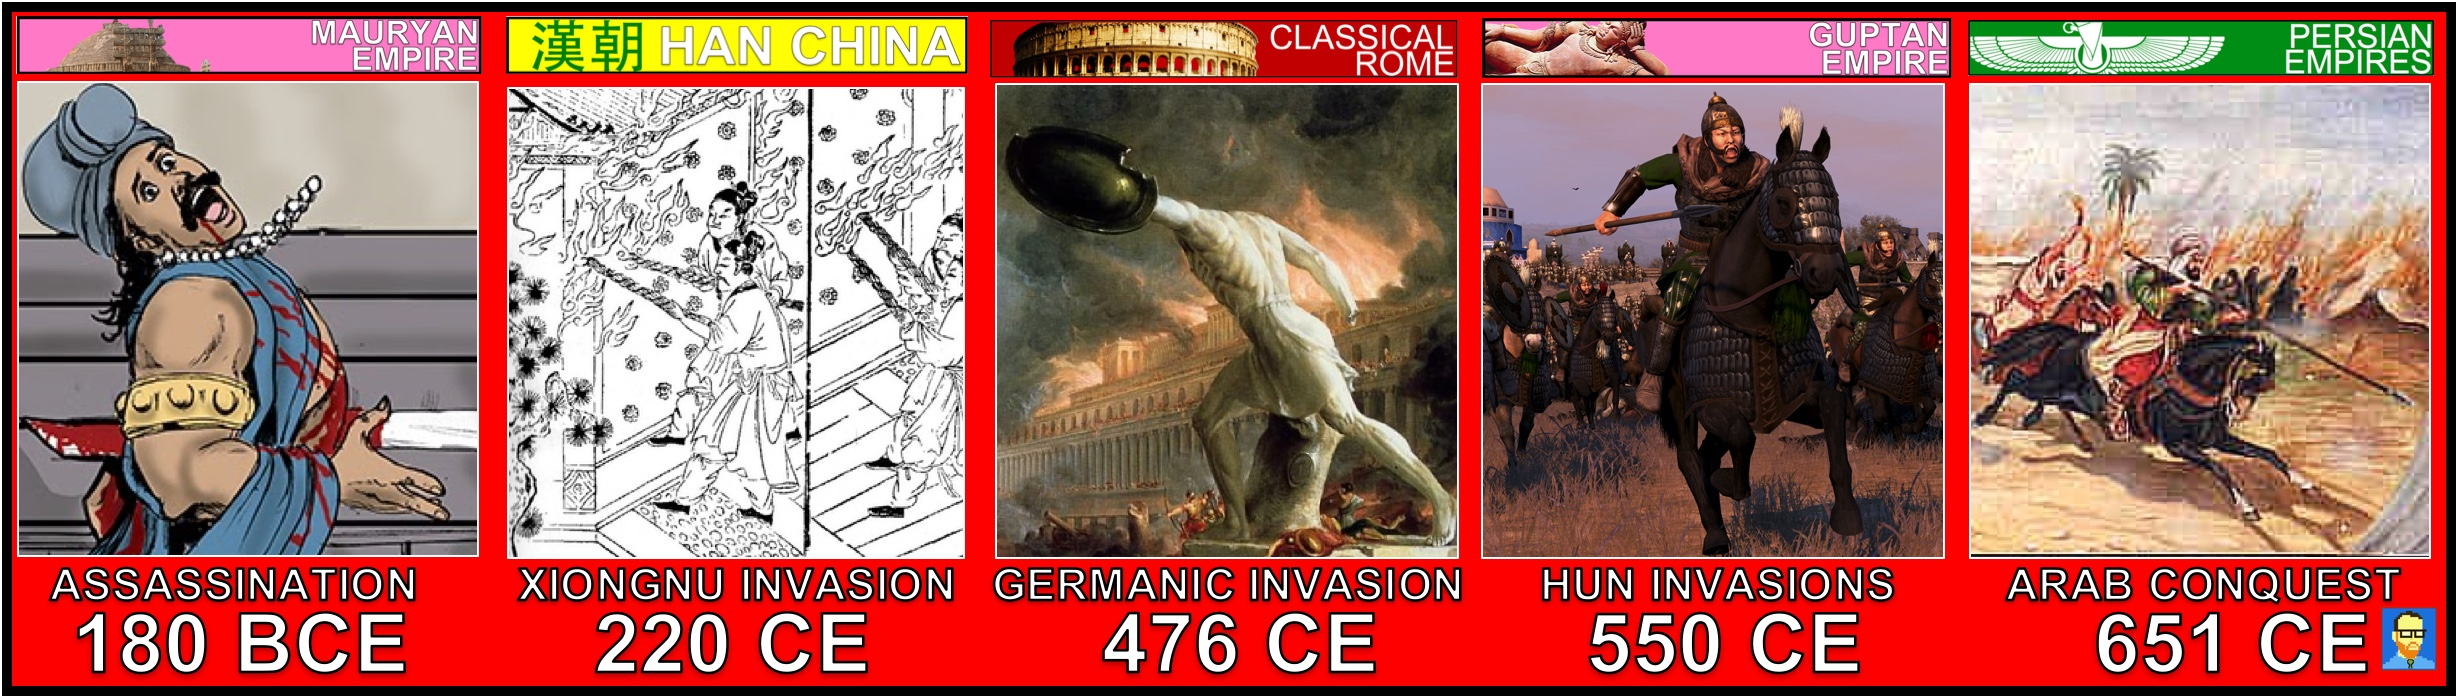 IV.  The Roman, Han, Persian, Mauryan, and Gupta empires created political, cultural, and administrative difficulties that they could not manage, which eventually led to their decline, collapse, and transformation into successor empires or states.